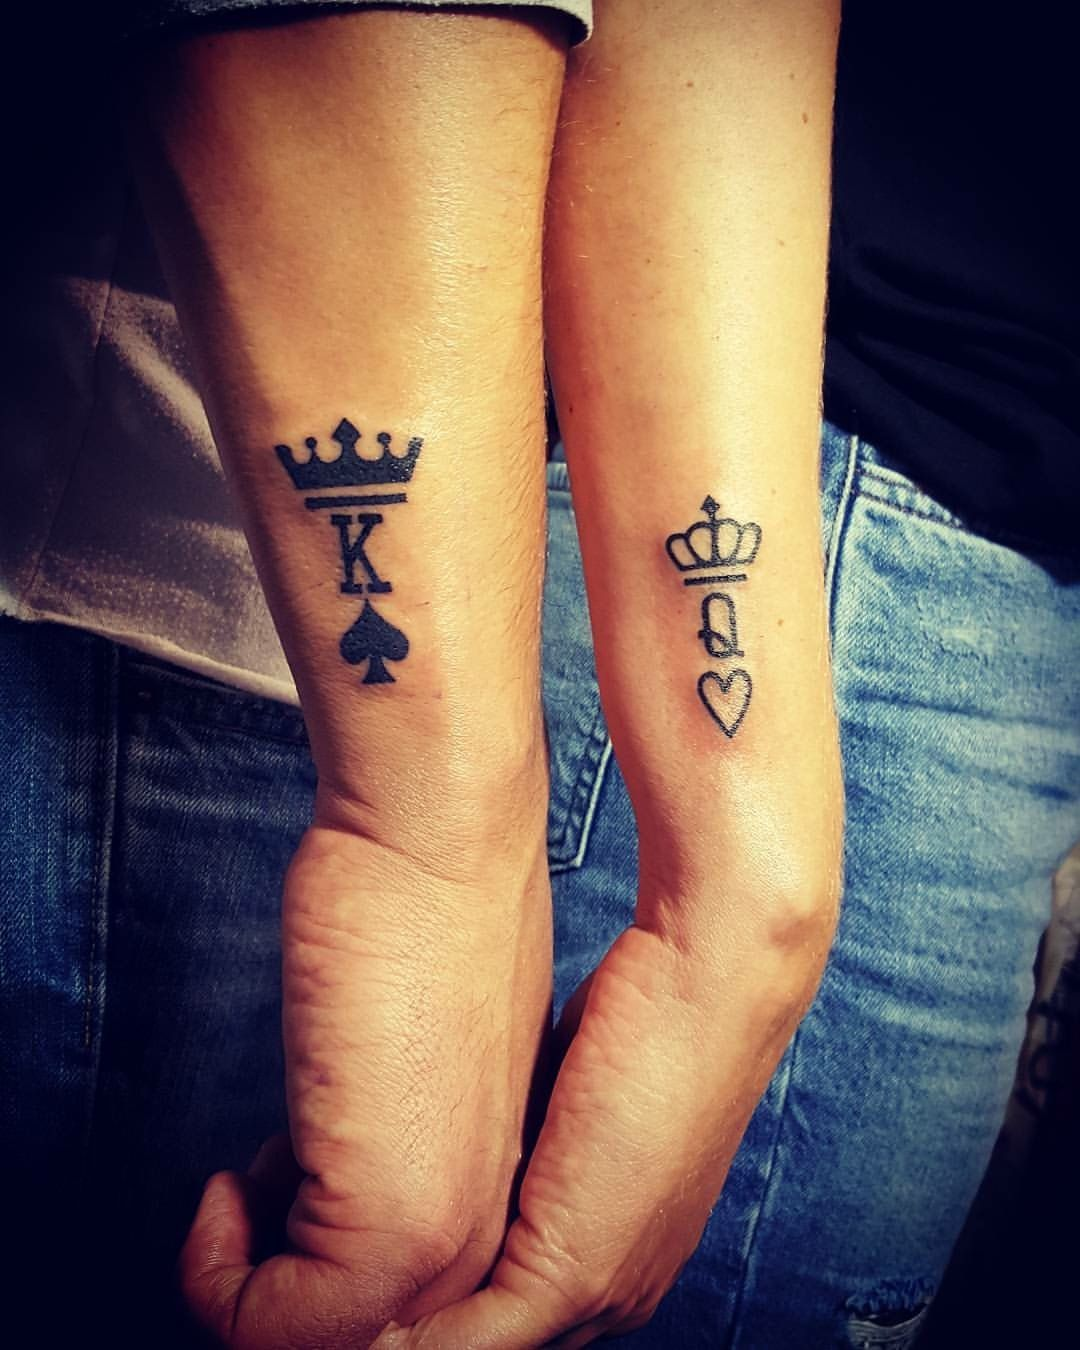 His & Hers King and Queen Tattoo